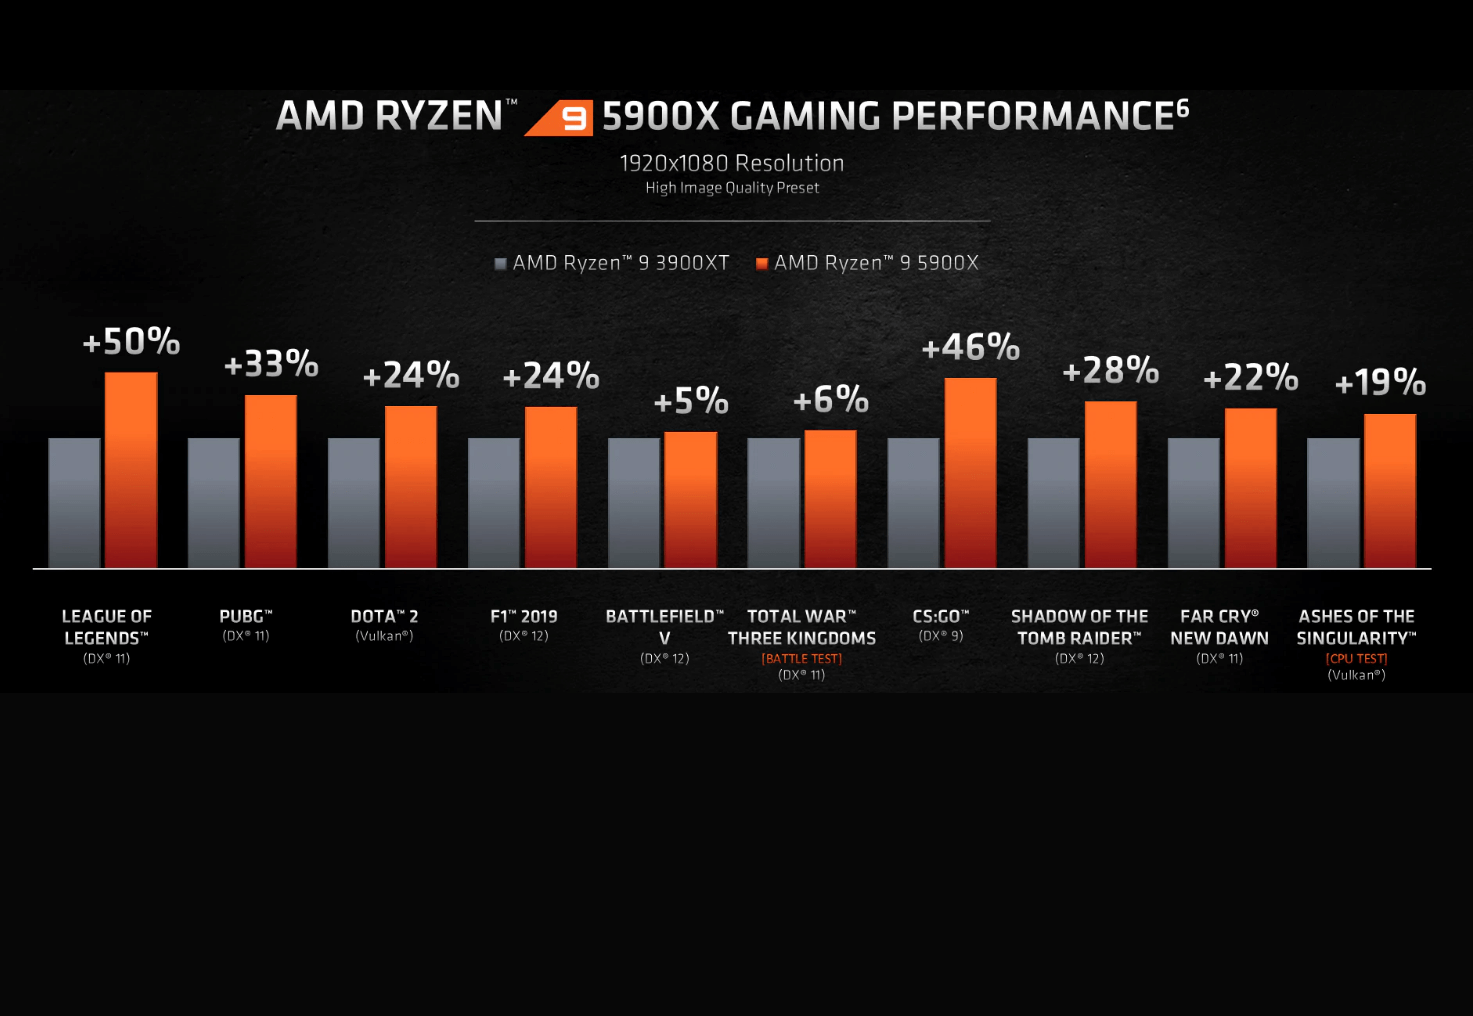 Ryzen 9 Amd Ryzen 9 5900x Gaming Performance Is Perfect For The Gamers Amd Games Performance